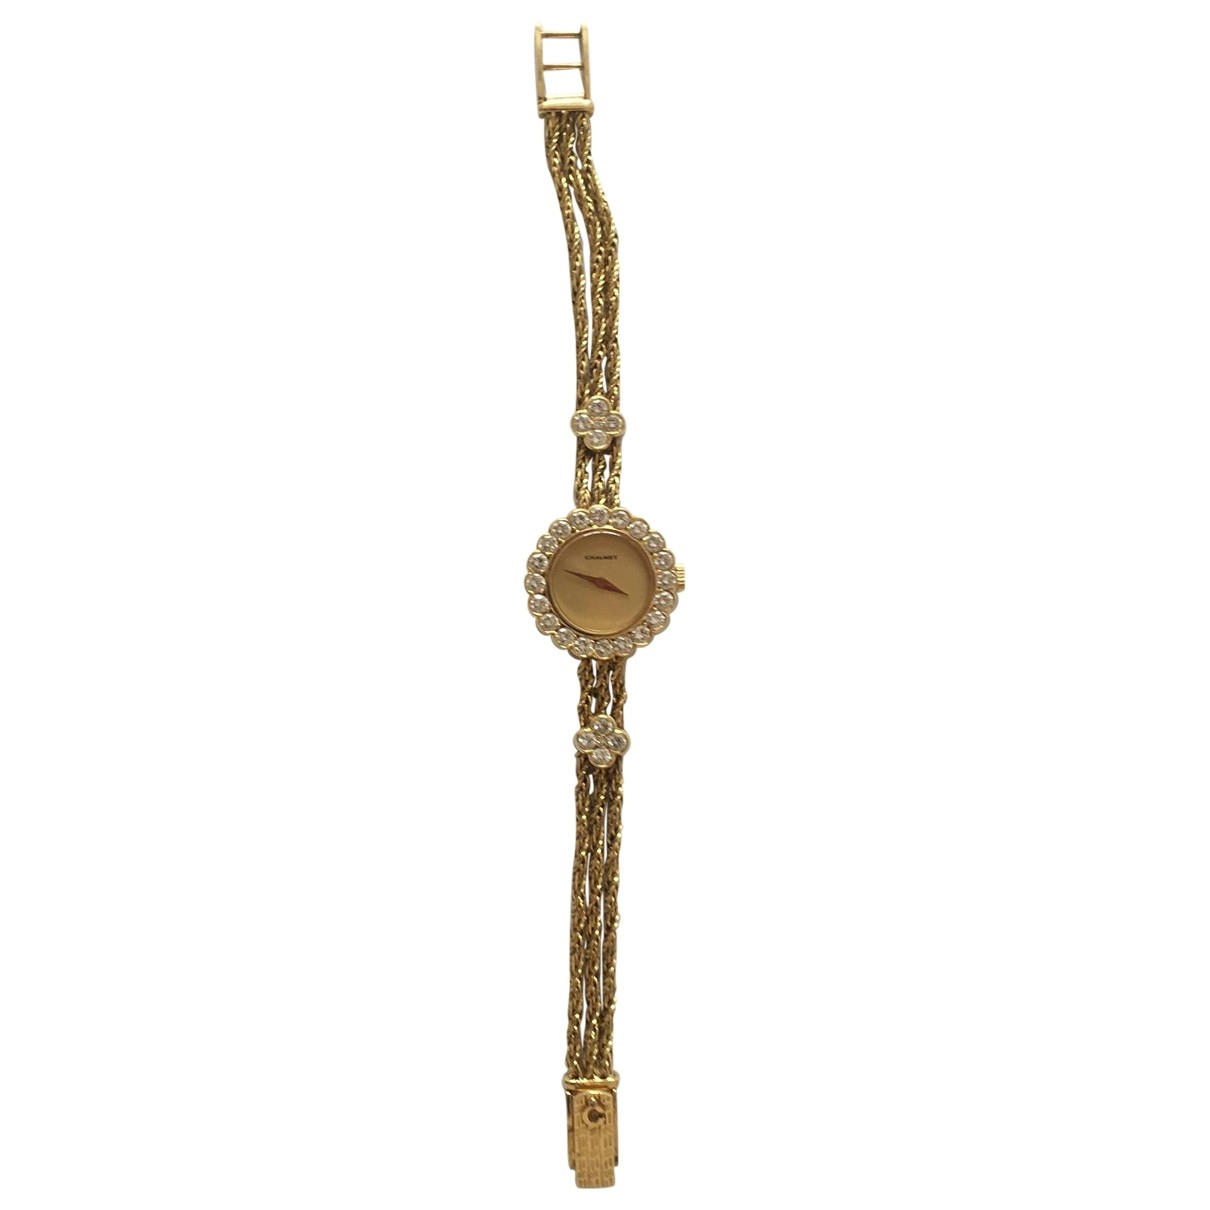 Chaumet \N Yellow Yellow gold watch for Women \N